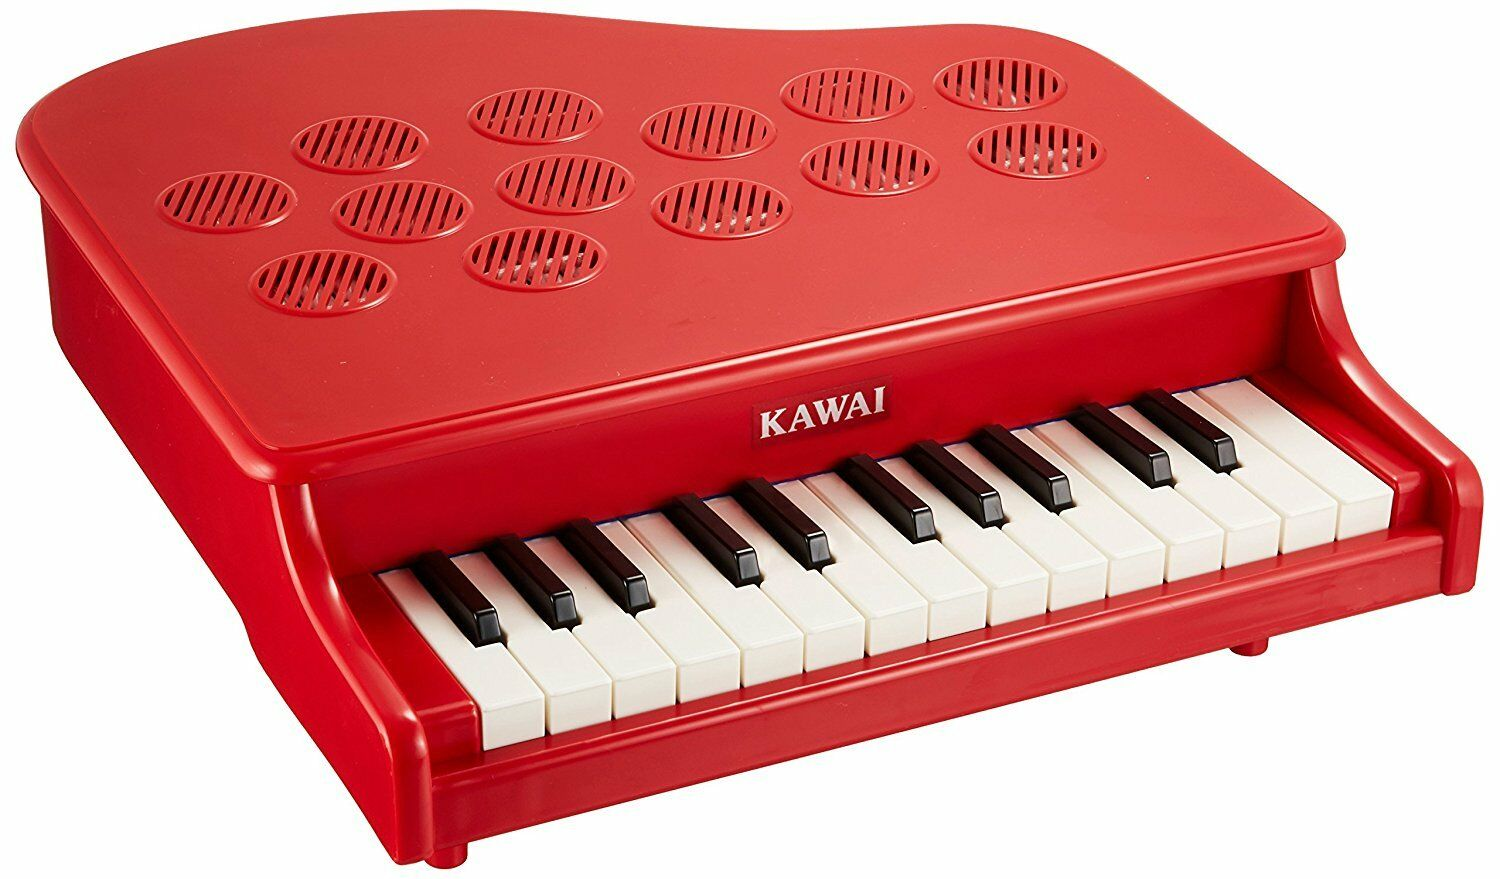 Japan KAWAI Musical instrument Mini Piano P-25 Rose rosso Expedited F/S :123